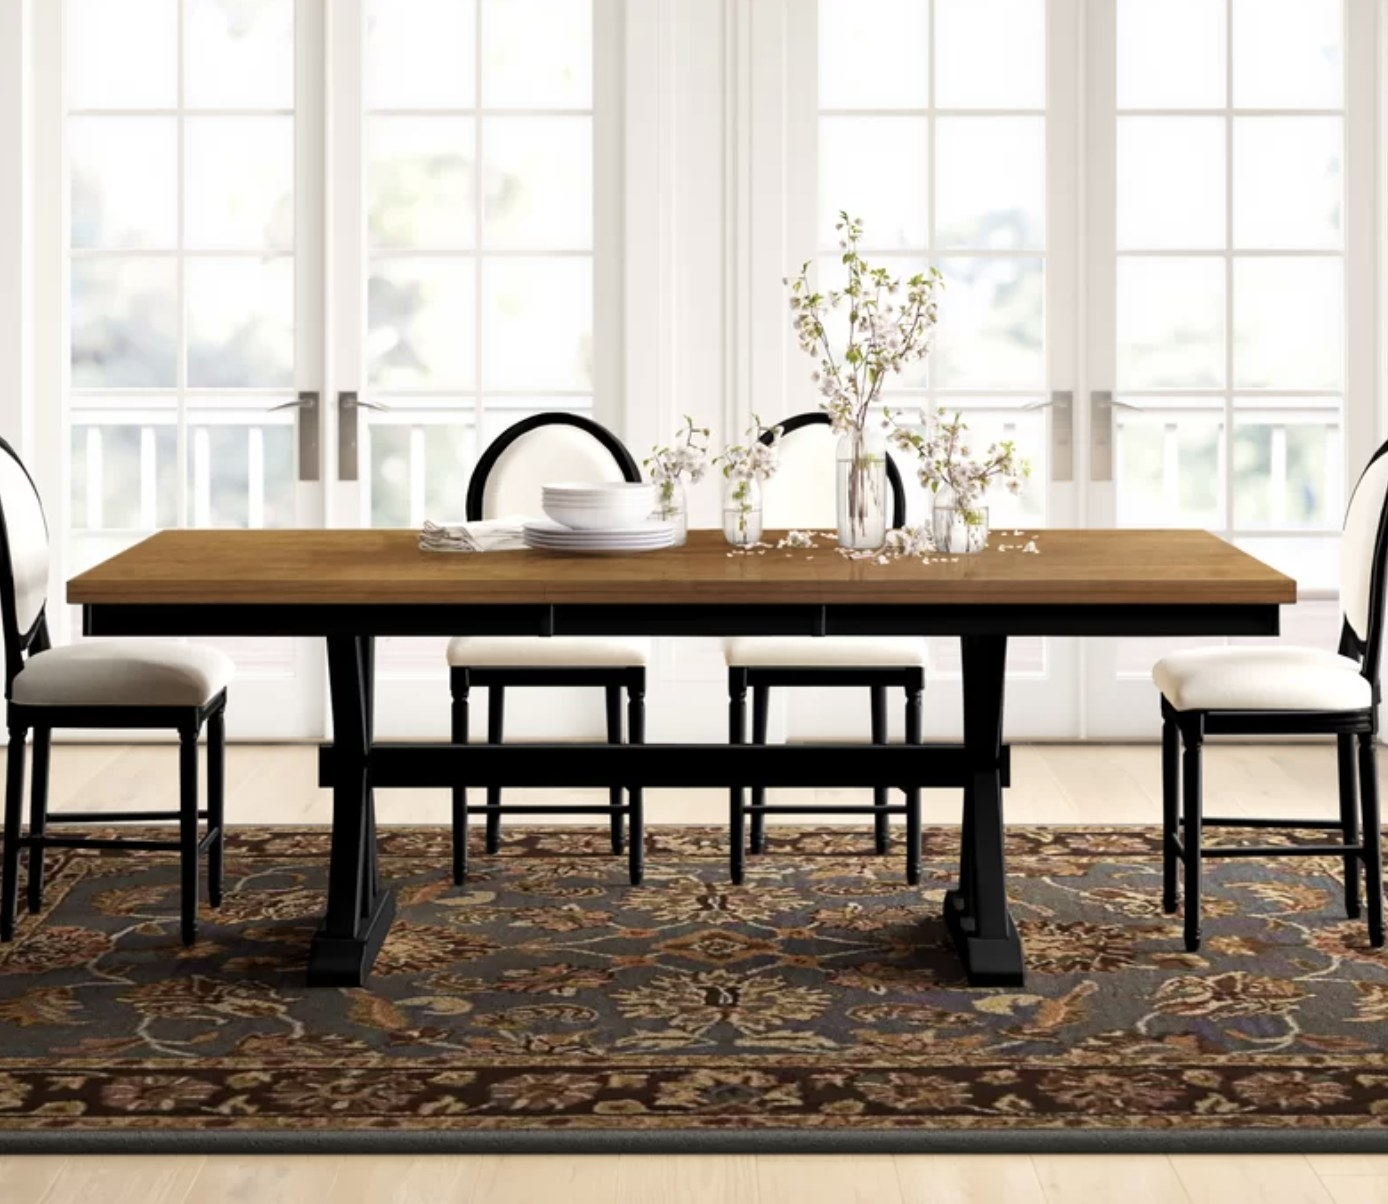 the dining room table in a dining room